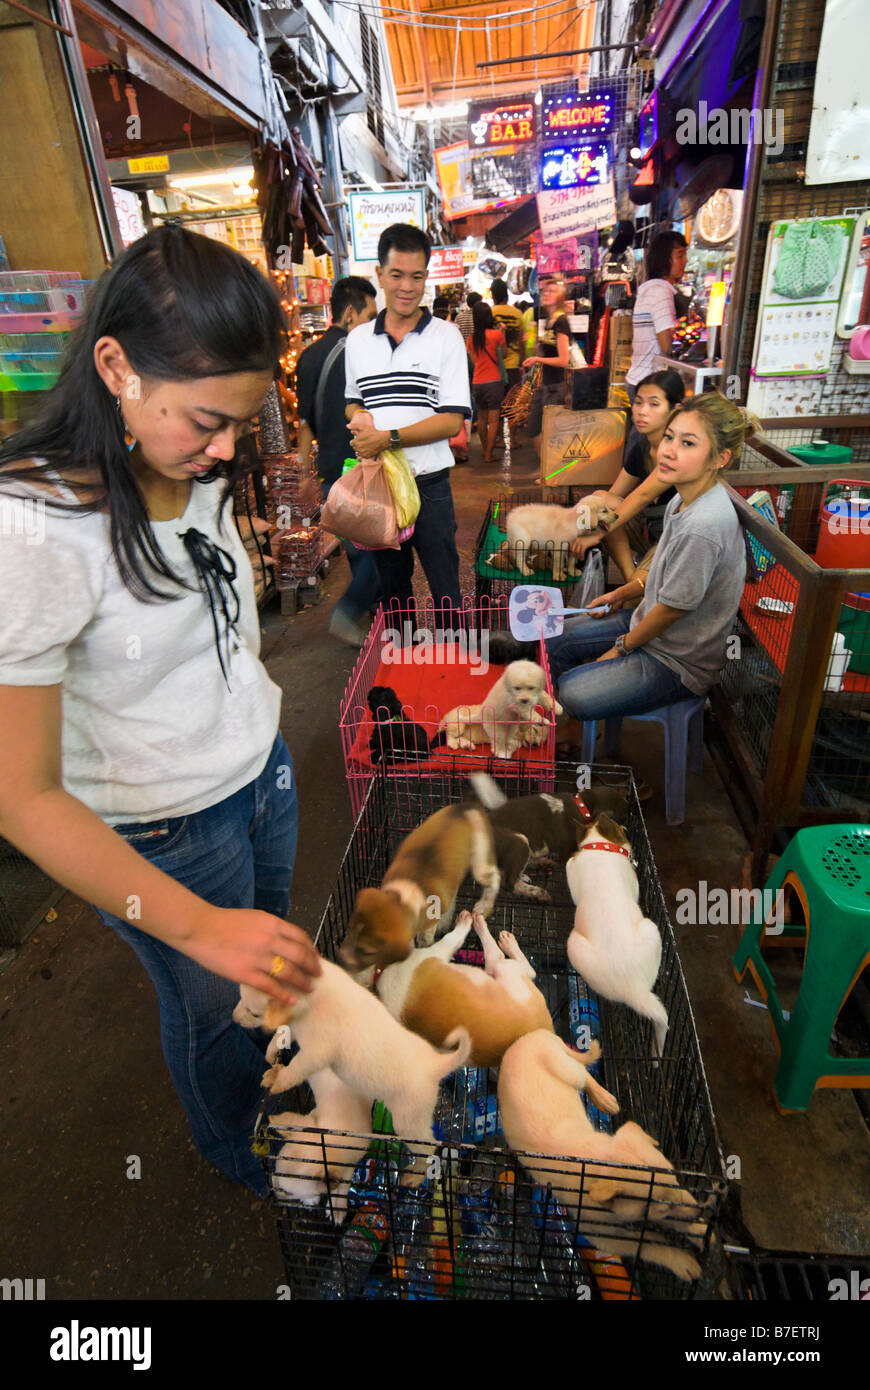 People selling pet puppies at on a stall at Chatuchak Weekend Market in Bangkok Thailand - Stock Image